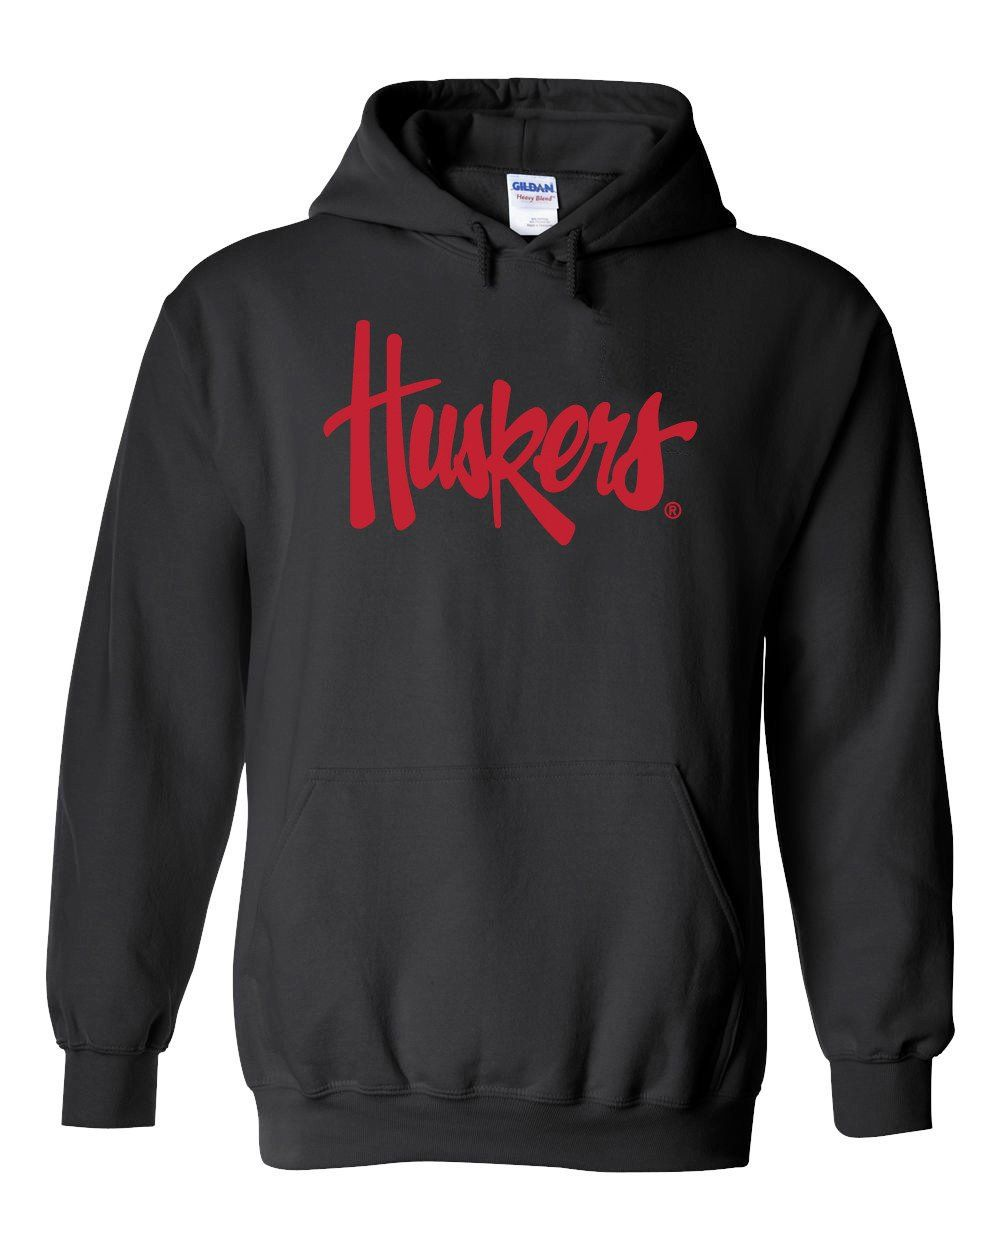 e70ca162a ... Sweatshirt. Show your Husker pride with this design! - FREE SHIPPING on  all orders over $35 - Officially licensed by the University of Nebraska -  8-oz, ...